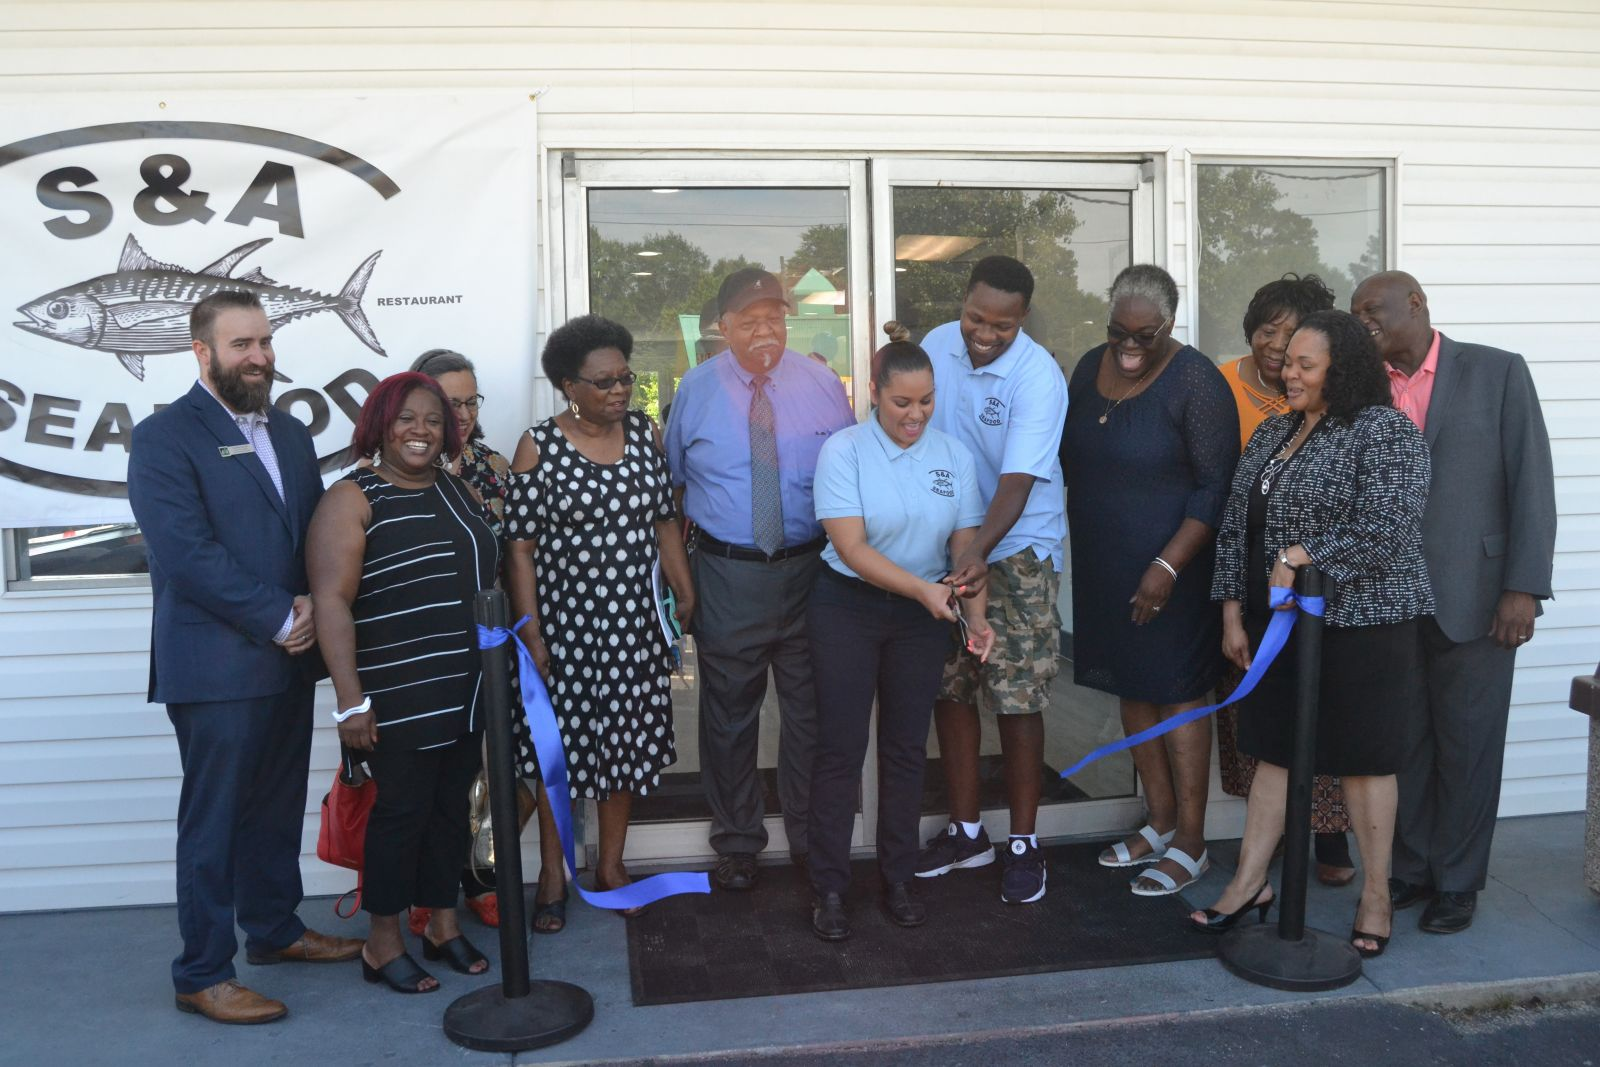 S&A Seafood celebrated the opening of a new location in North Columbia with a ribbon cutting on Friday. Co-owners Davant and Delilah Jenkins (center, with scissors) opened their first restaurant and market in Blythewood seven years ago. (Photo/Travis Boland)